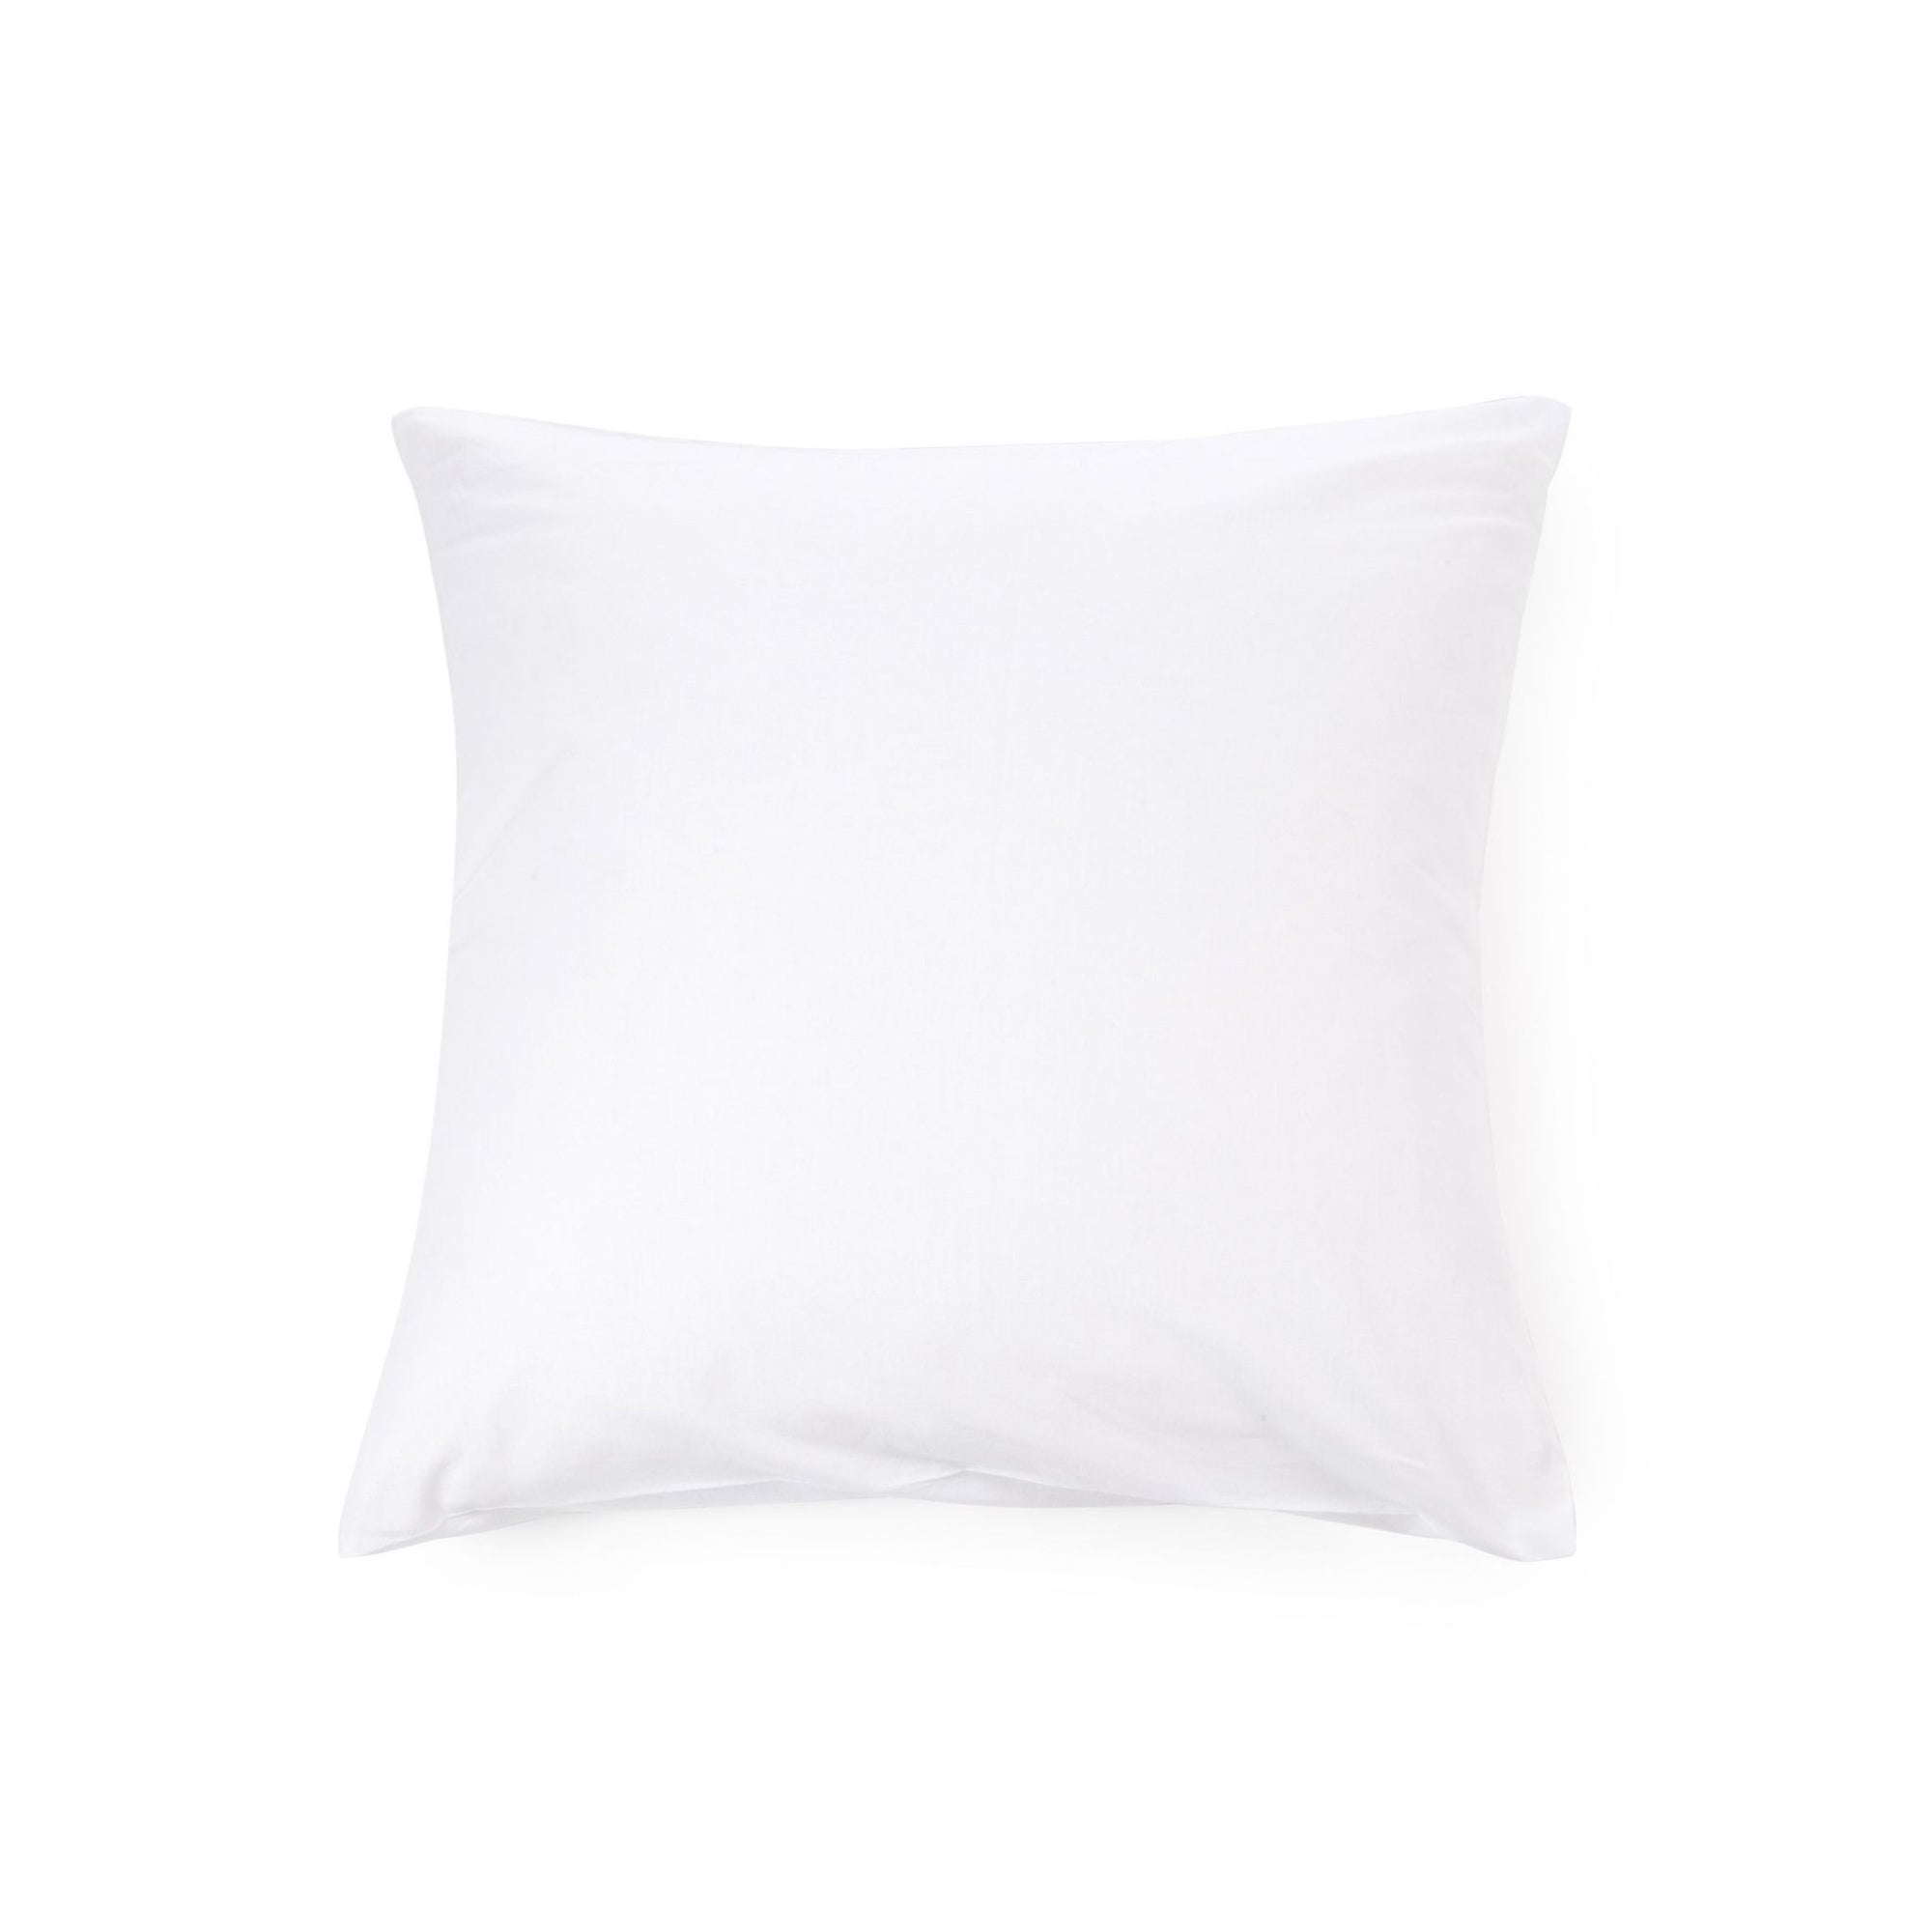 California Optic White Pillow Sham